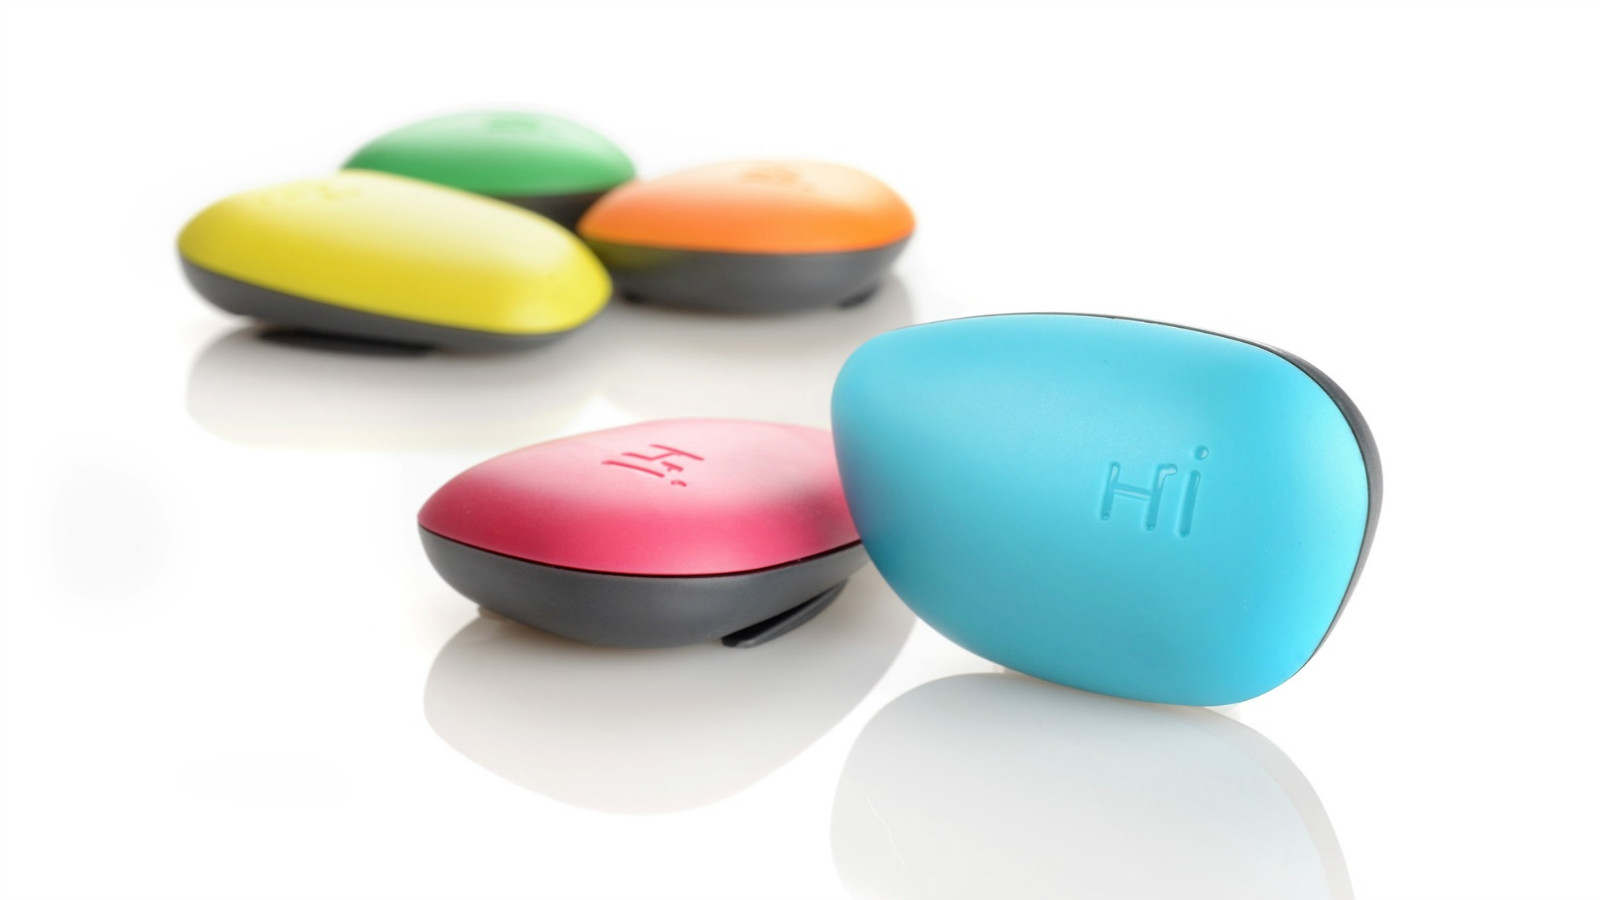 The device comes in a variety of colors. Photo courtesy of Hachiko